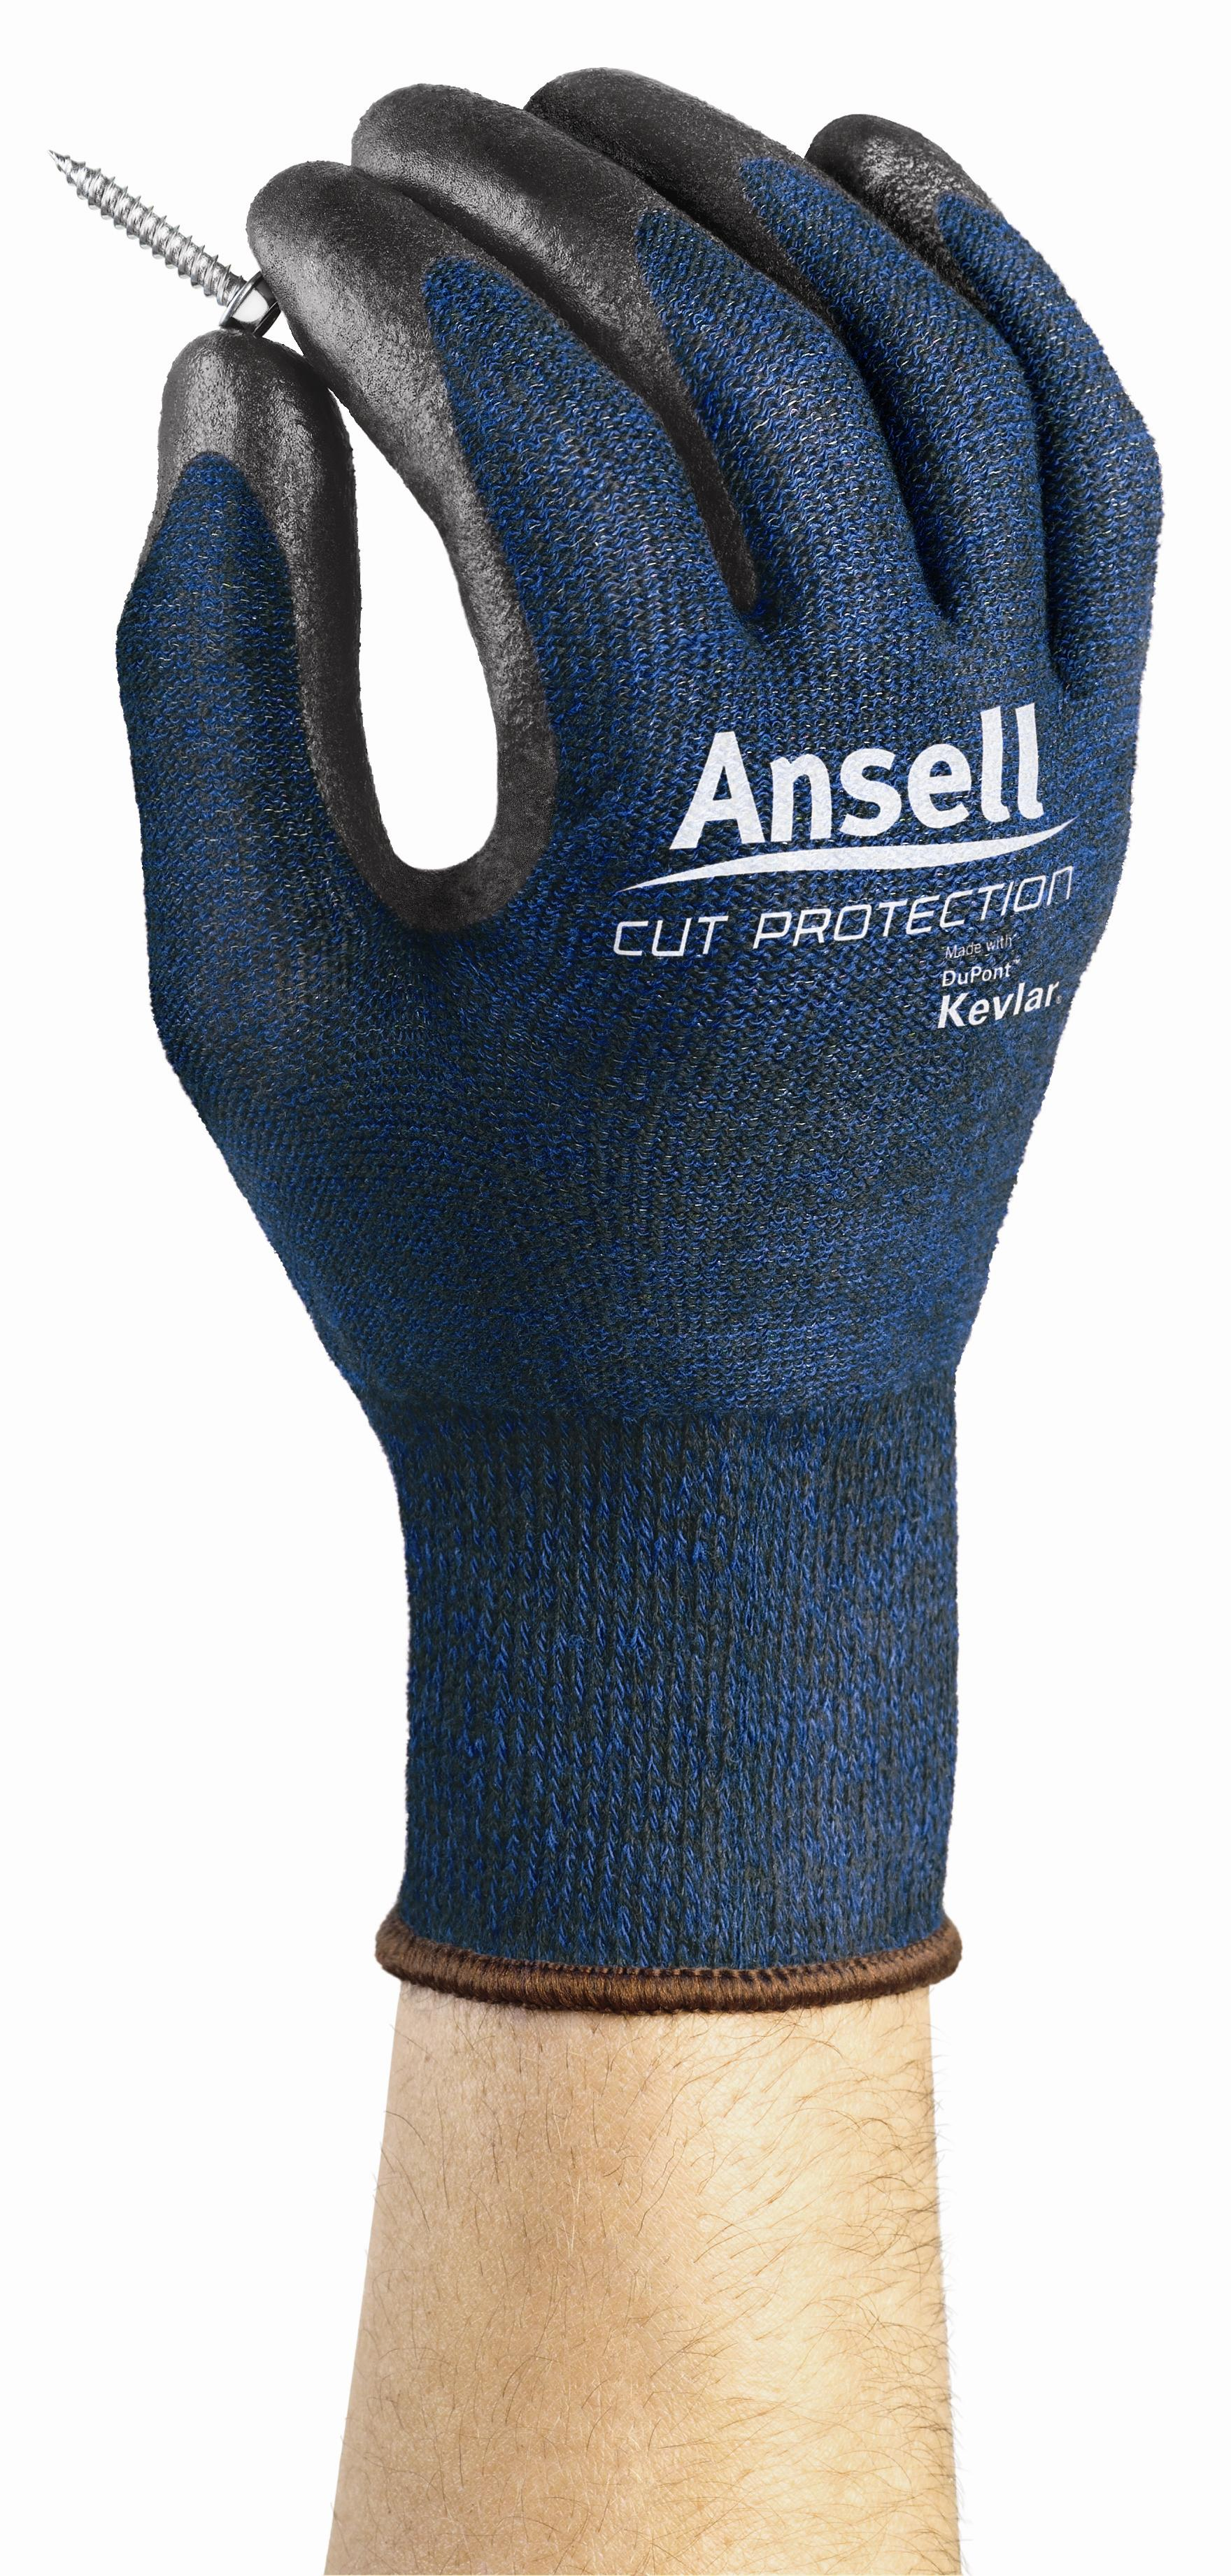 Ansell Releases Cut Protection Glove for Construction Industry